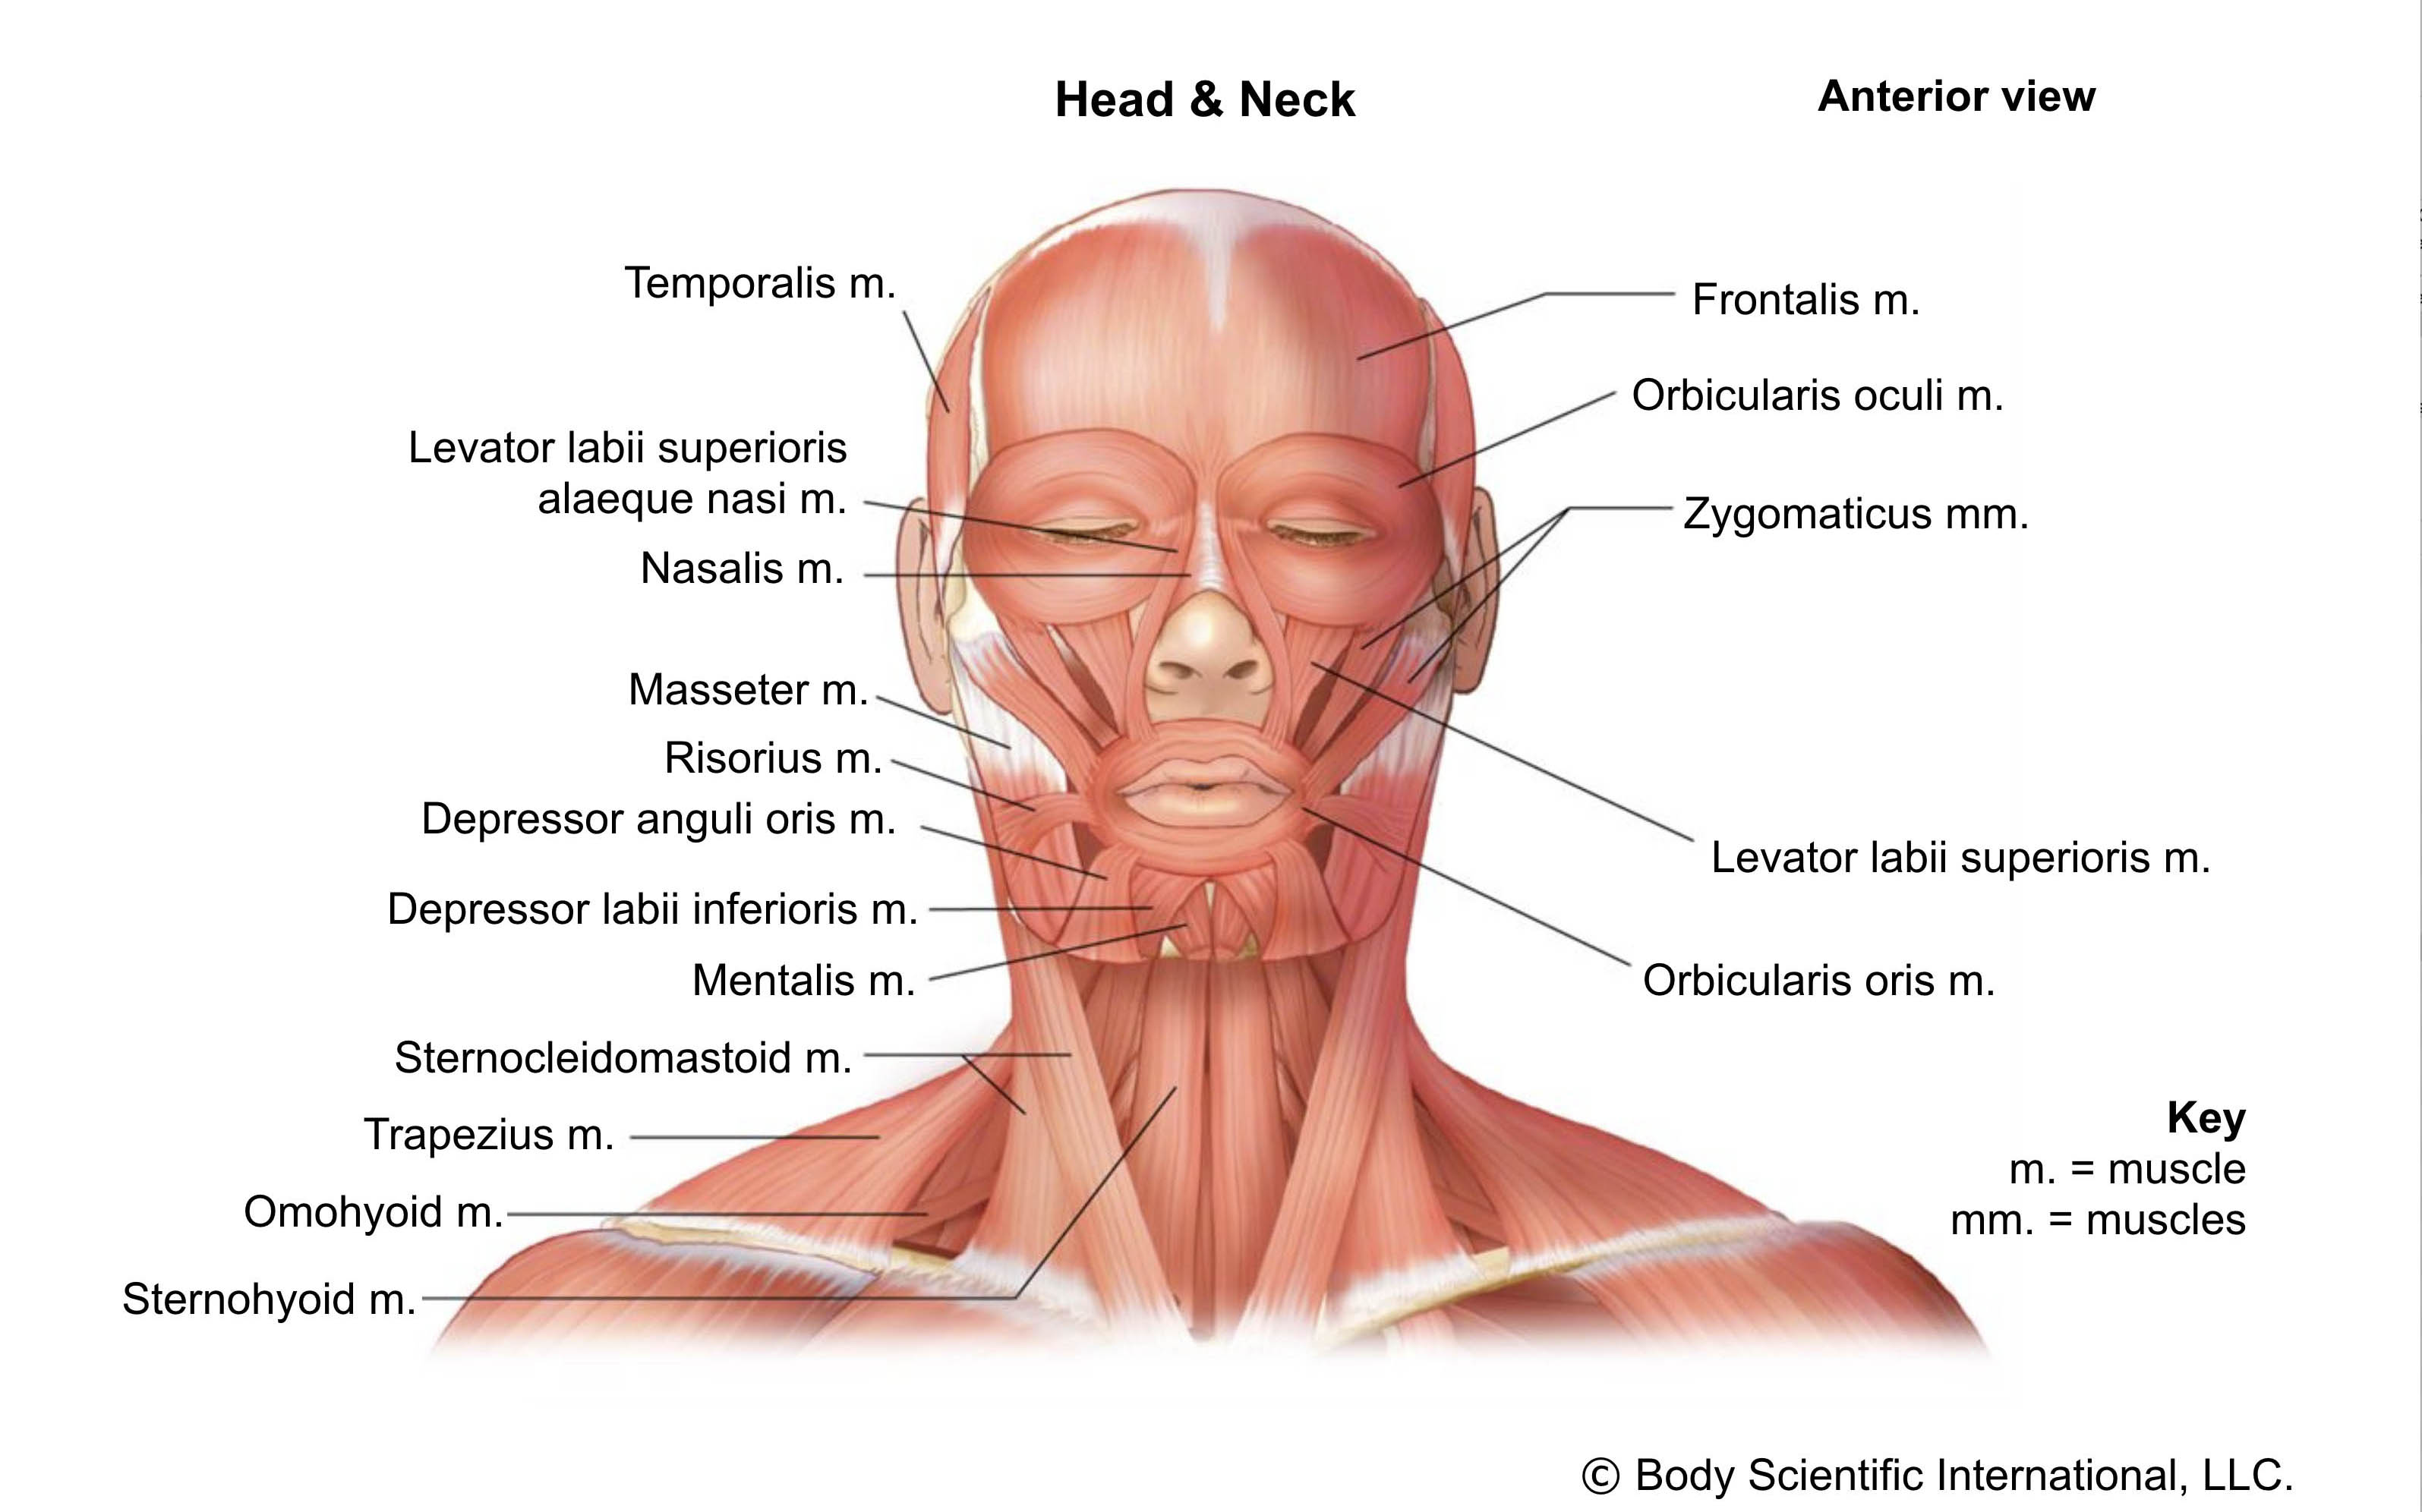 Head and Neck Anterior